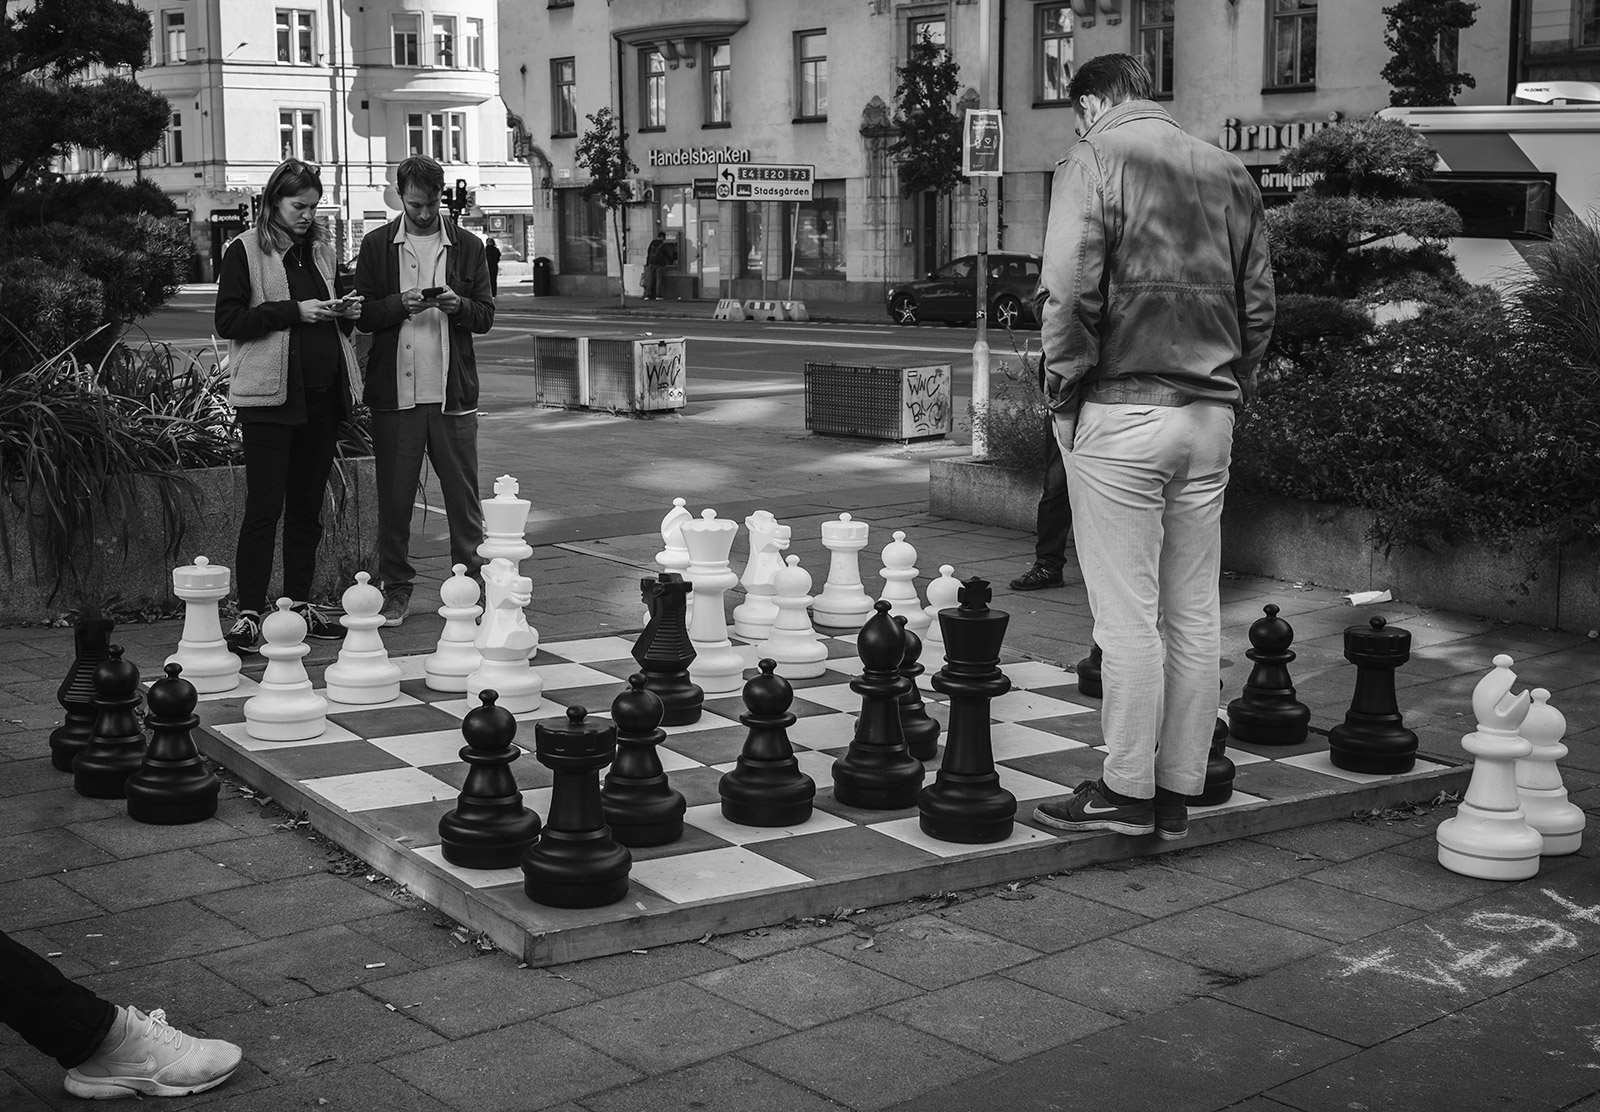 People standing at giant chess board